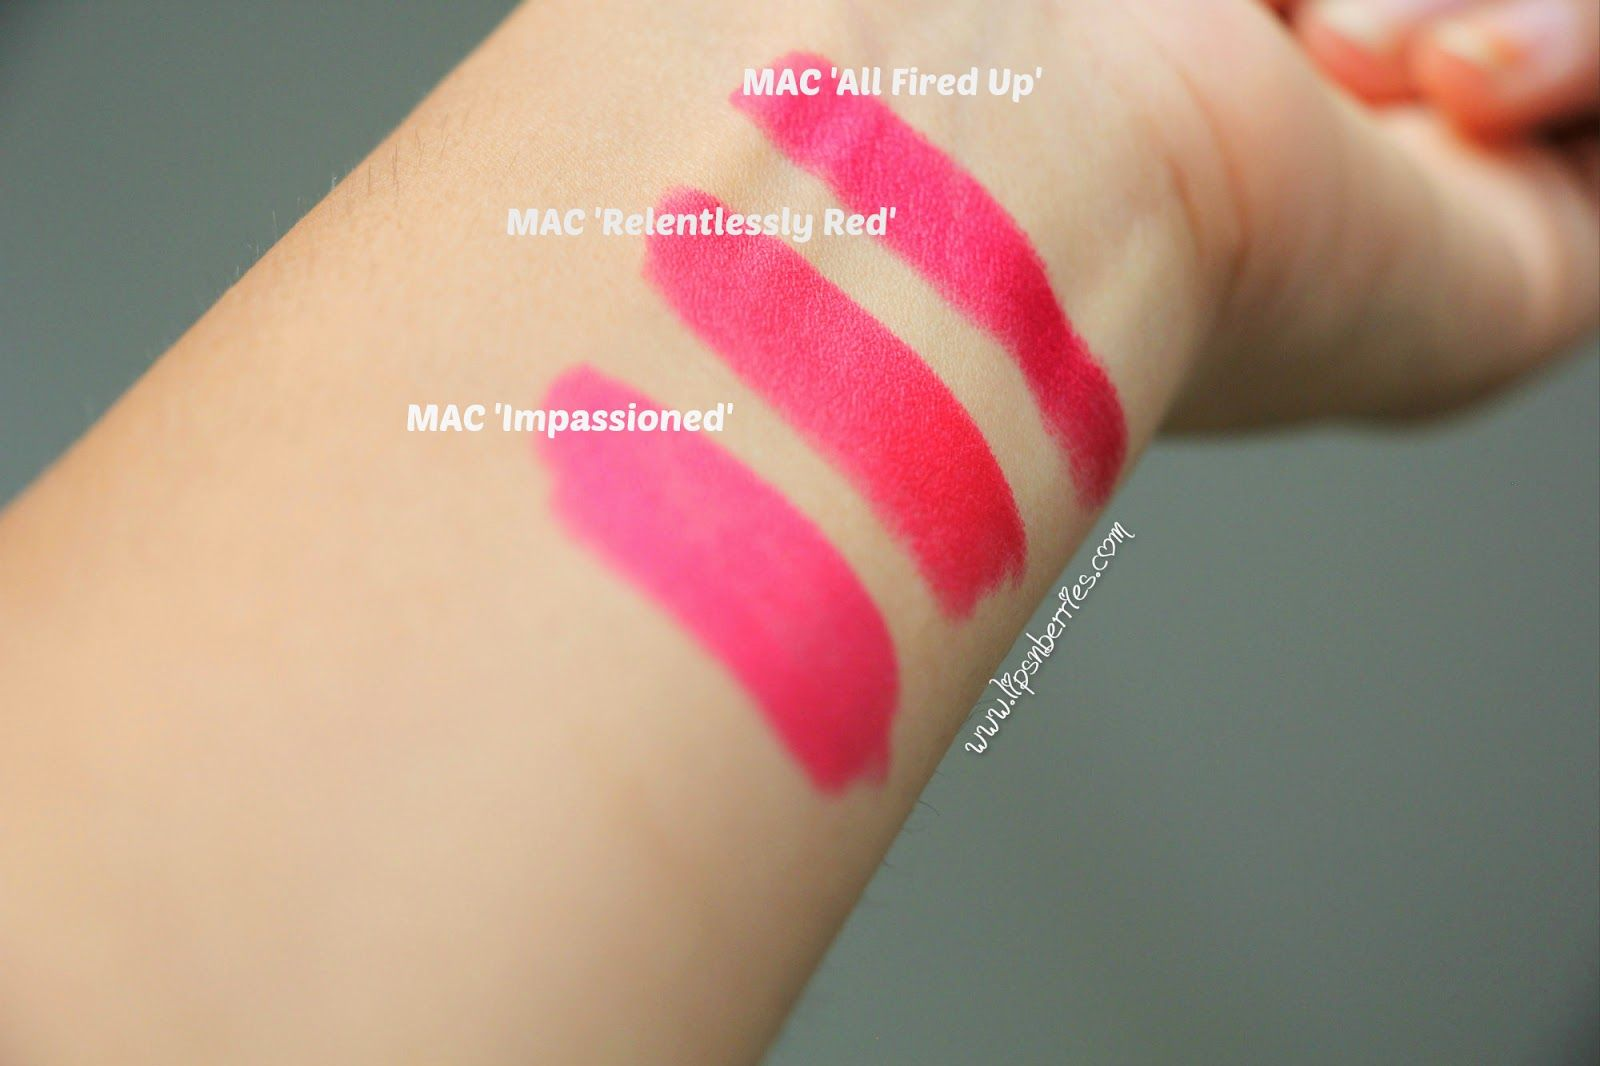 relentlessly red mac lipstick